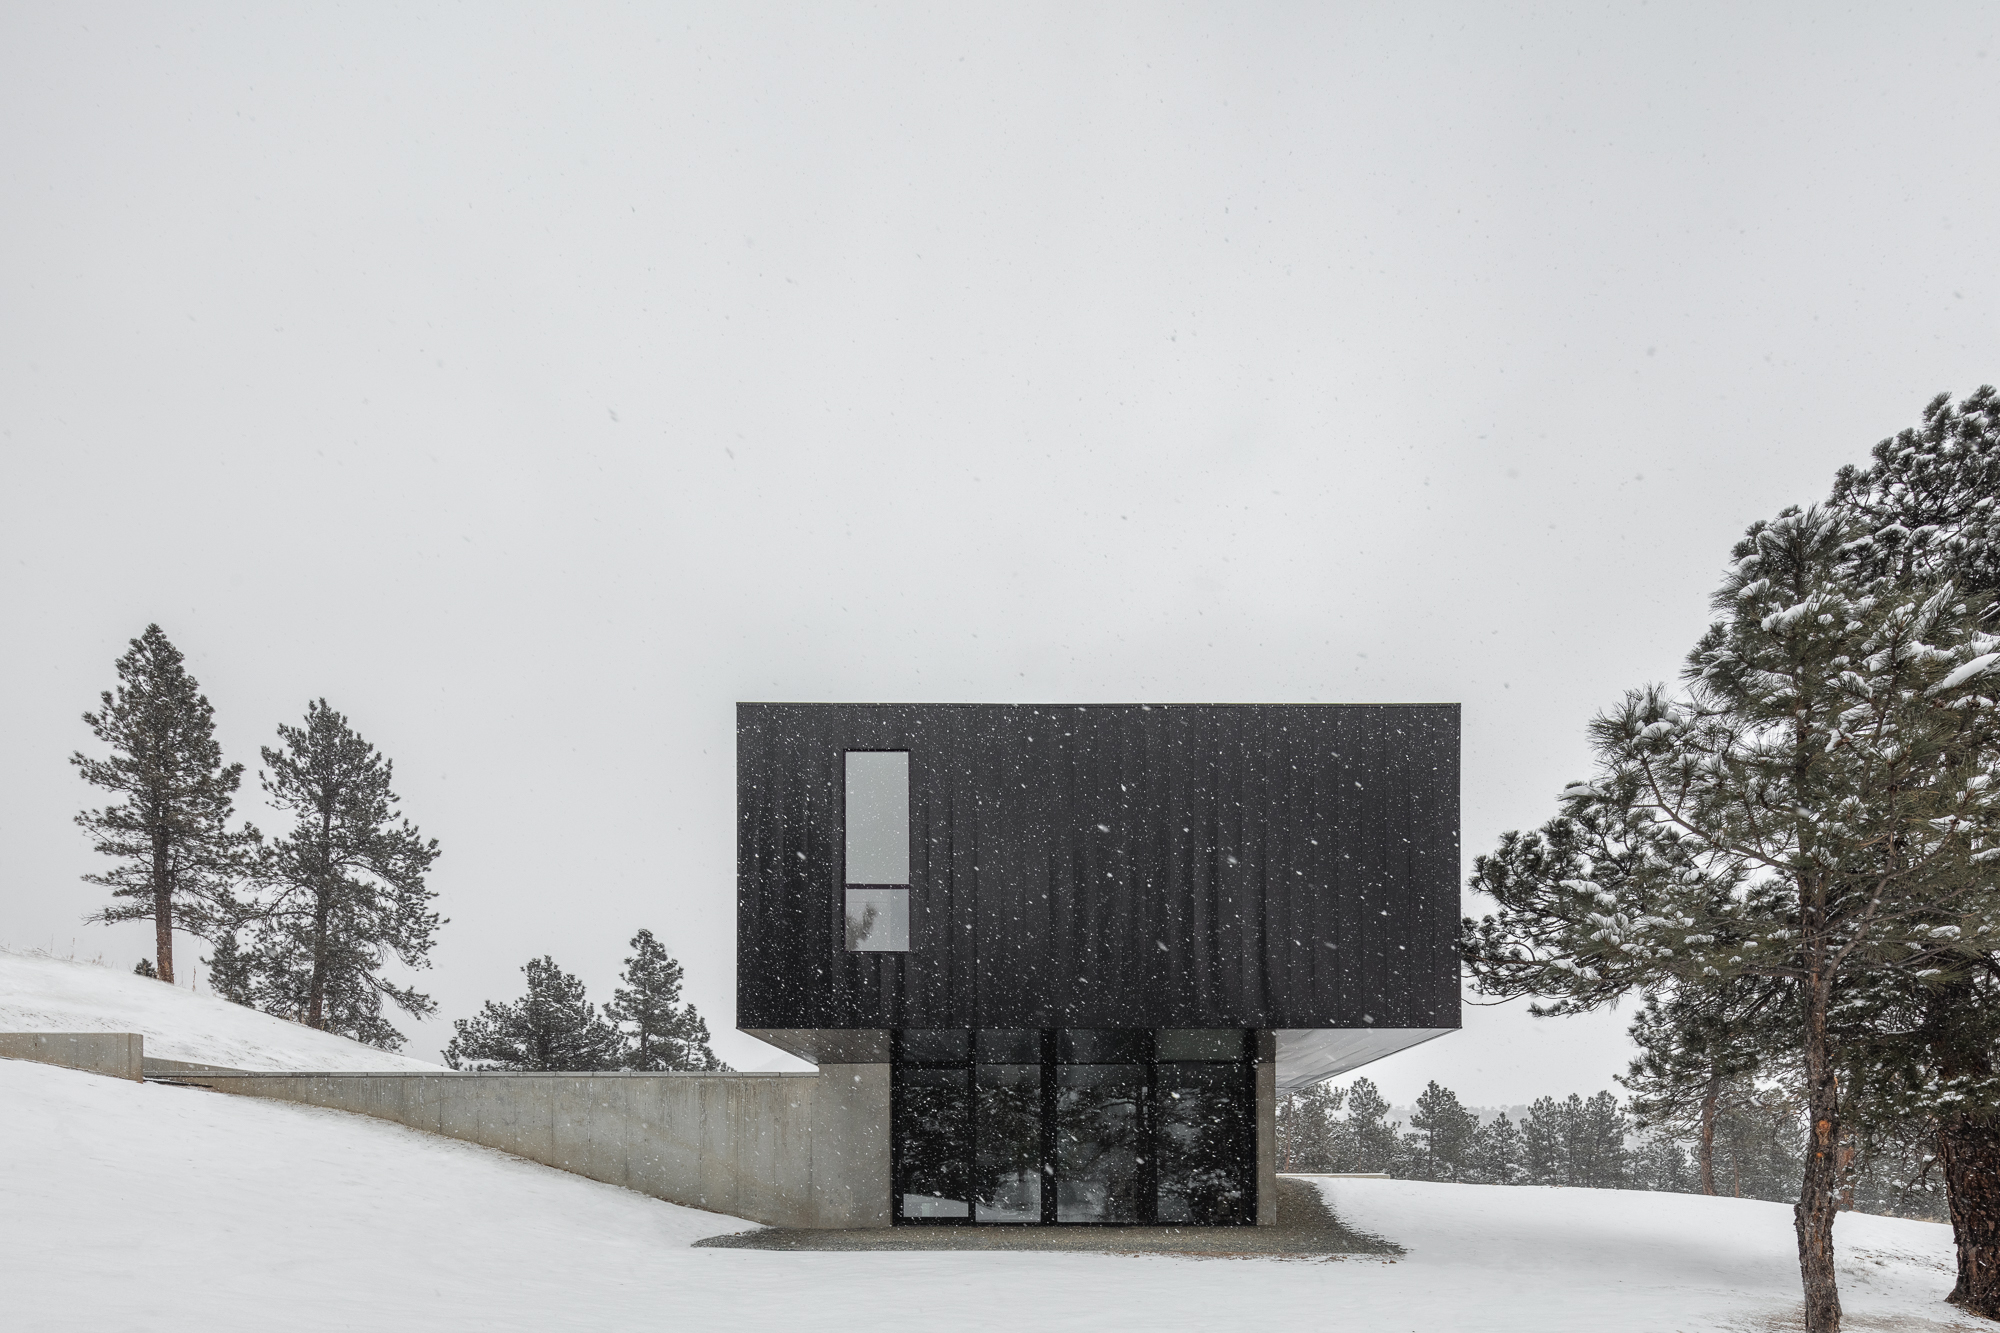 Studio B_Blur House_Winter_FINALS_05.jpg